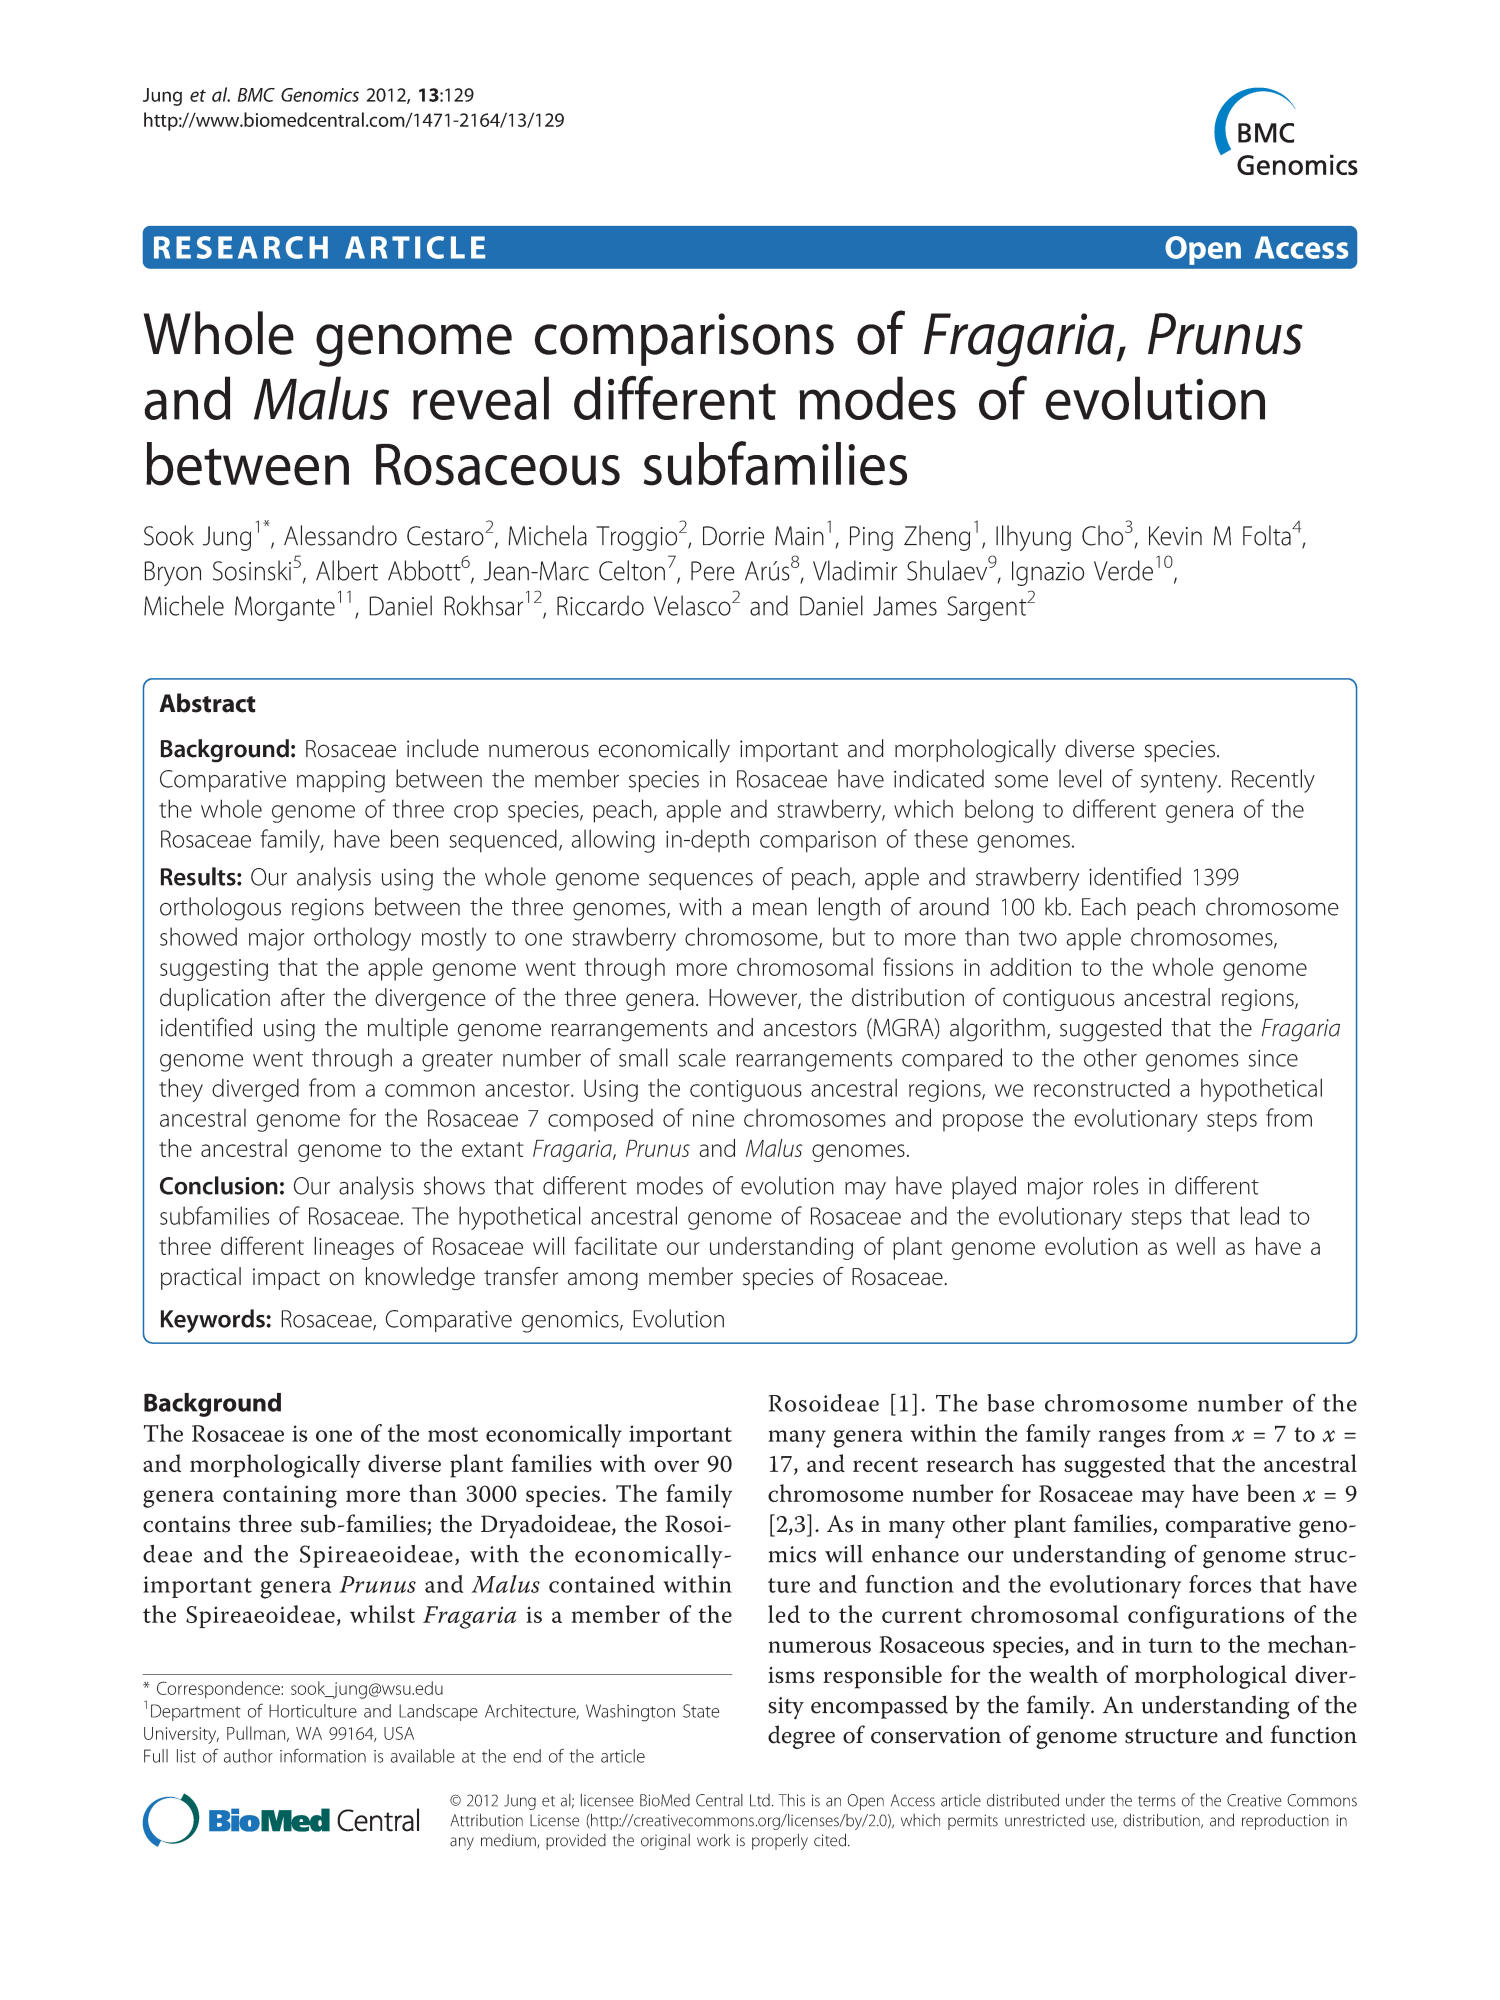 Whole genome comparisons of Fragaria, Prunus and Malus reveal different modes of evolution between Rosaceous subfamilies                                                                                                      1